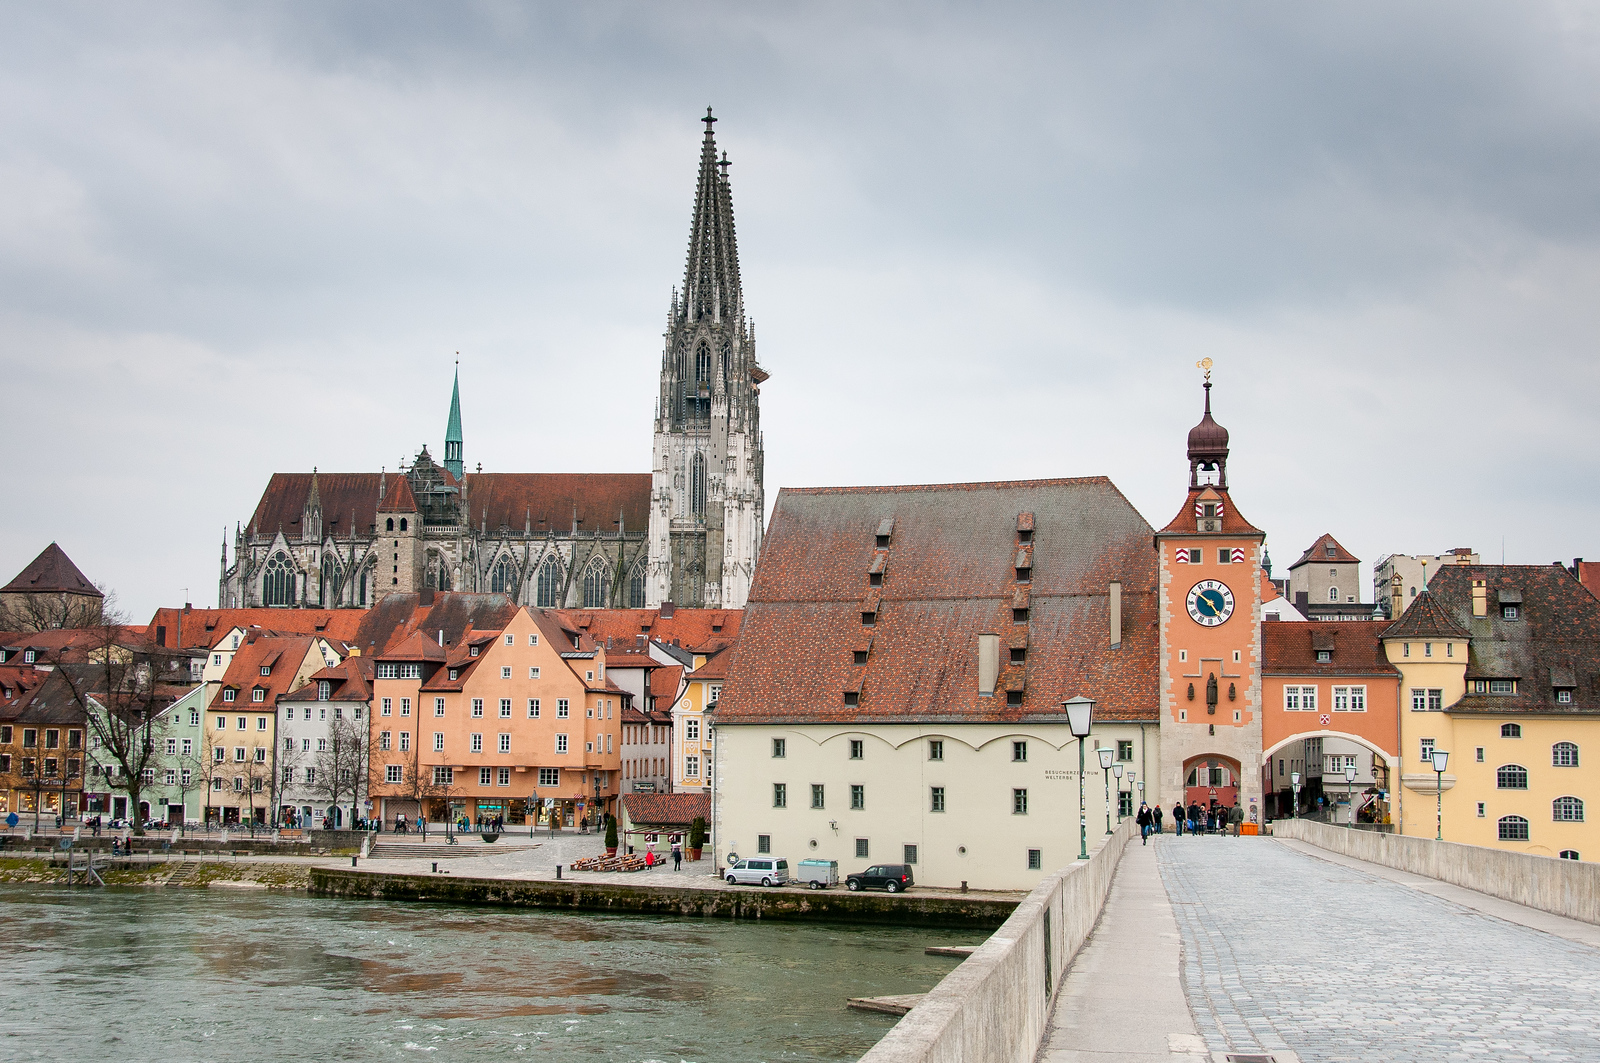 Old town of Regensburg with Stadtamhof World Heritage Site